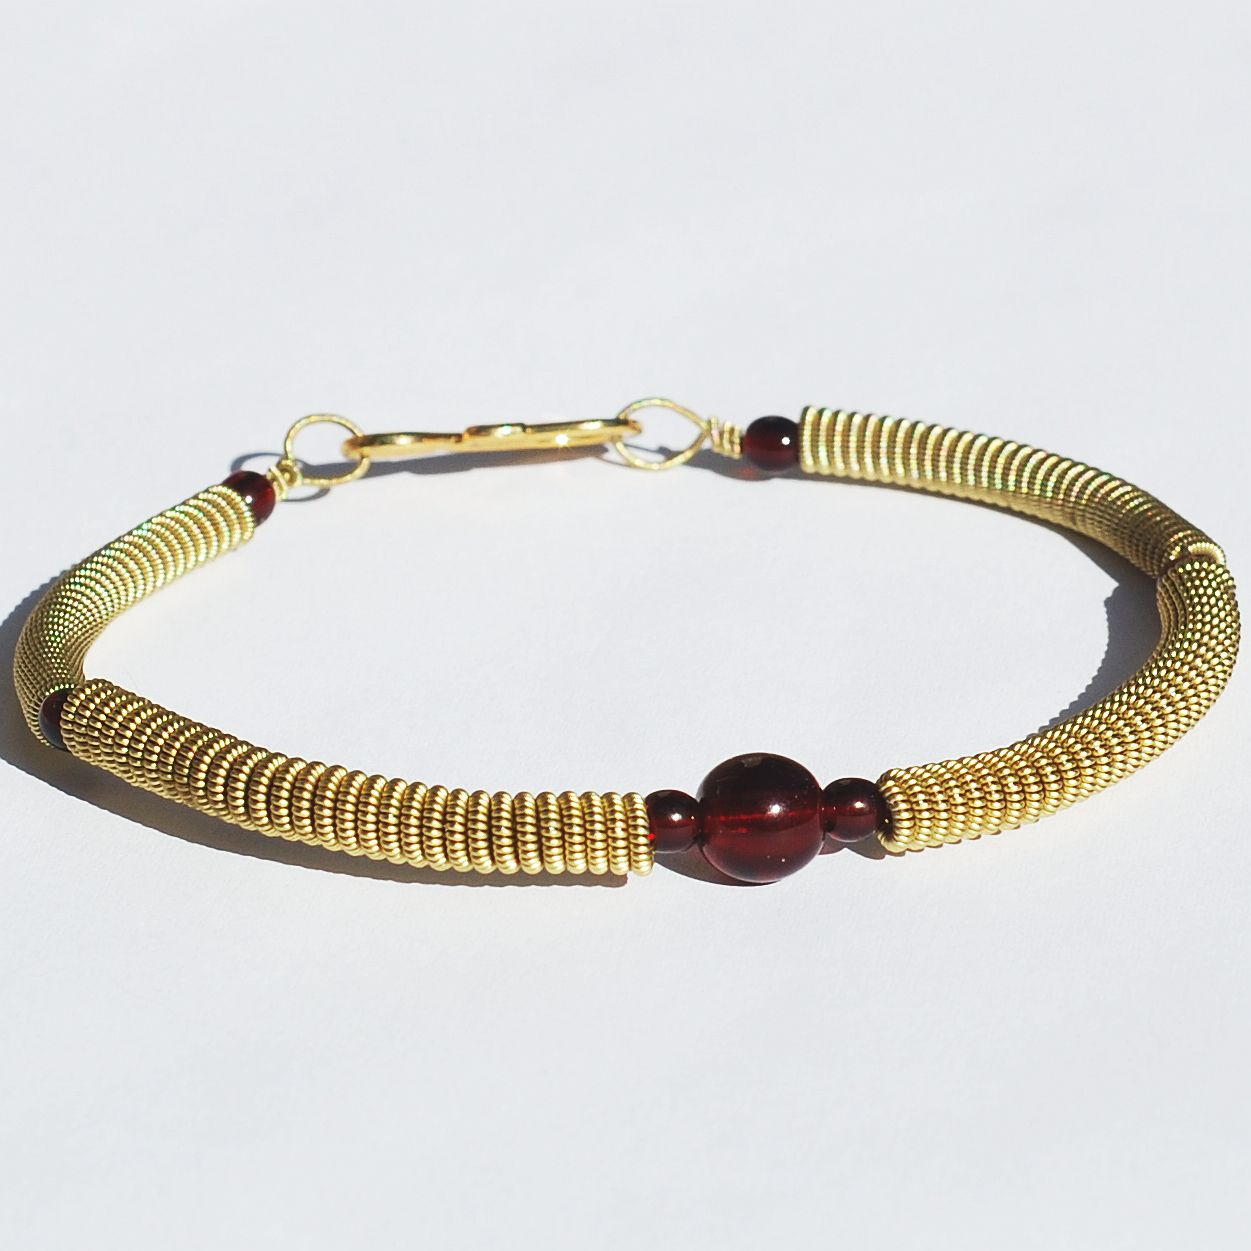 guitar string jewelry by tanith rohe guitar string bracelet garnet red and brass upcycled jewelry. Black Bedroom Furniture Sets. Home Design Ideas